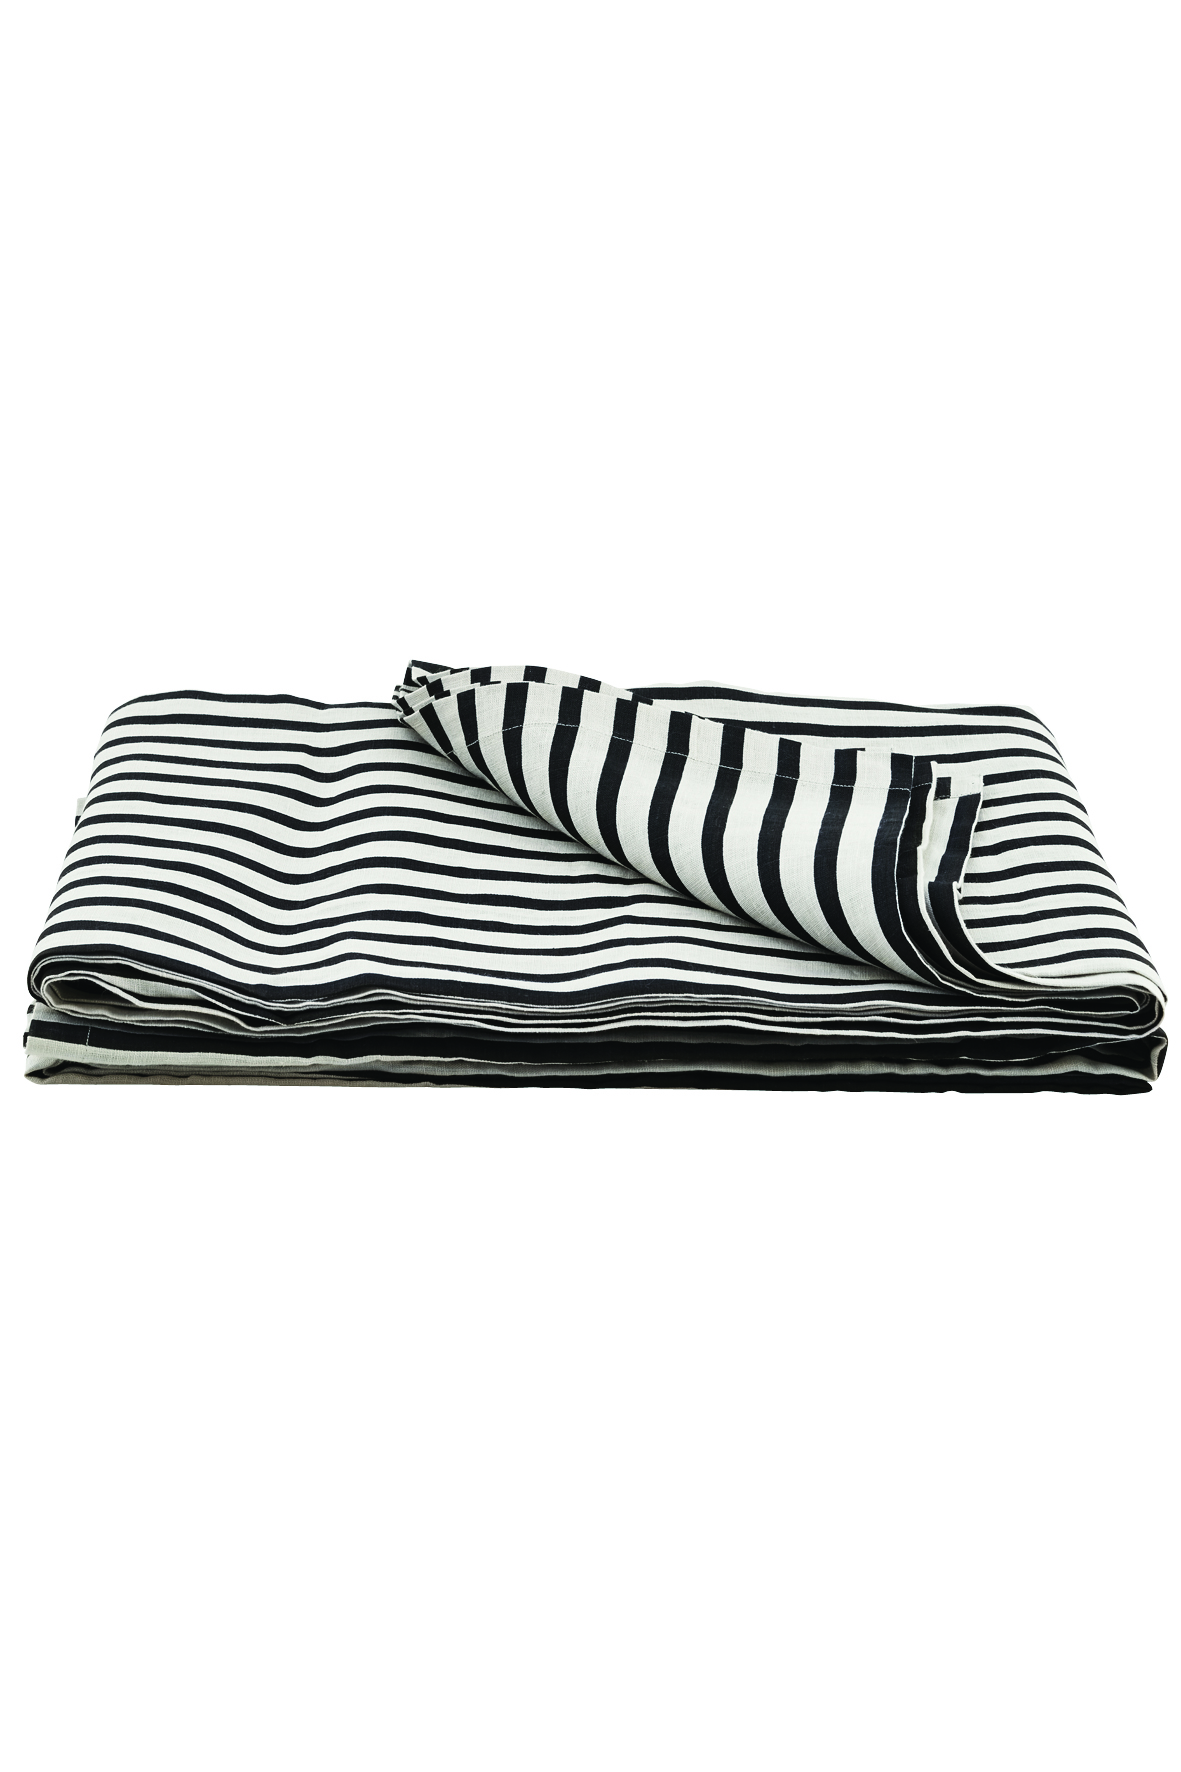 Image of   House doctor tæppe stripe sort/grå 250x220 cm